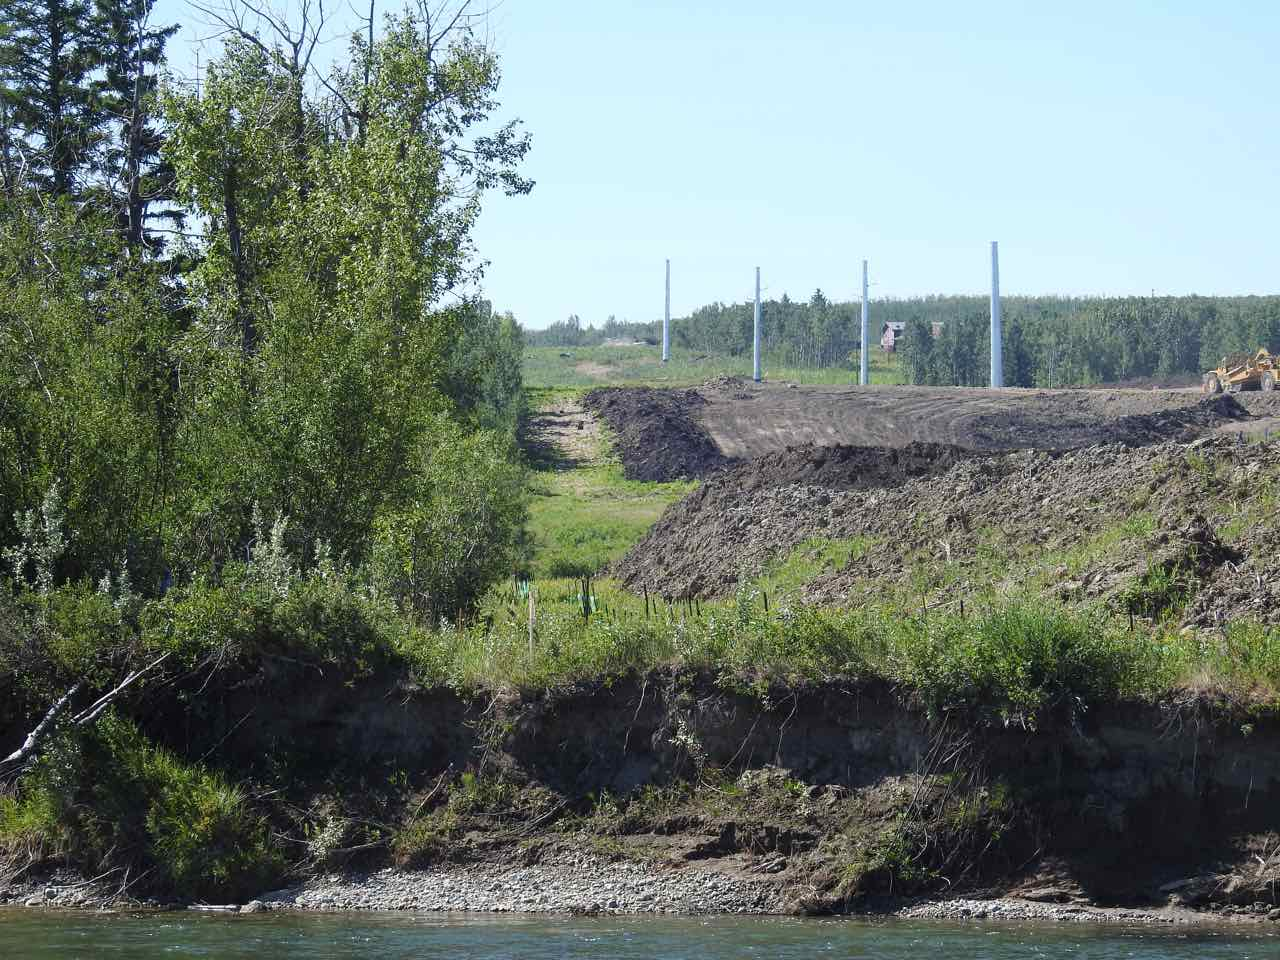 12_SWCRR-TUC-Weaselhead__Park_Beaver_Pond_Wetland_(Green_Space)_to_be_Bermed(_filled)_By_Contractor-July_24_2017.jpg